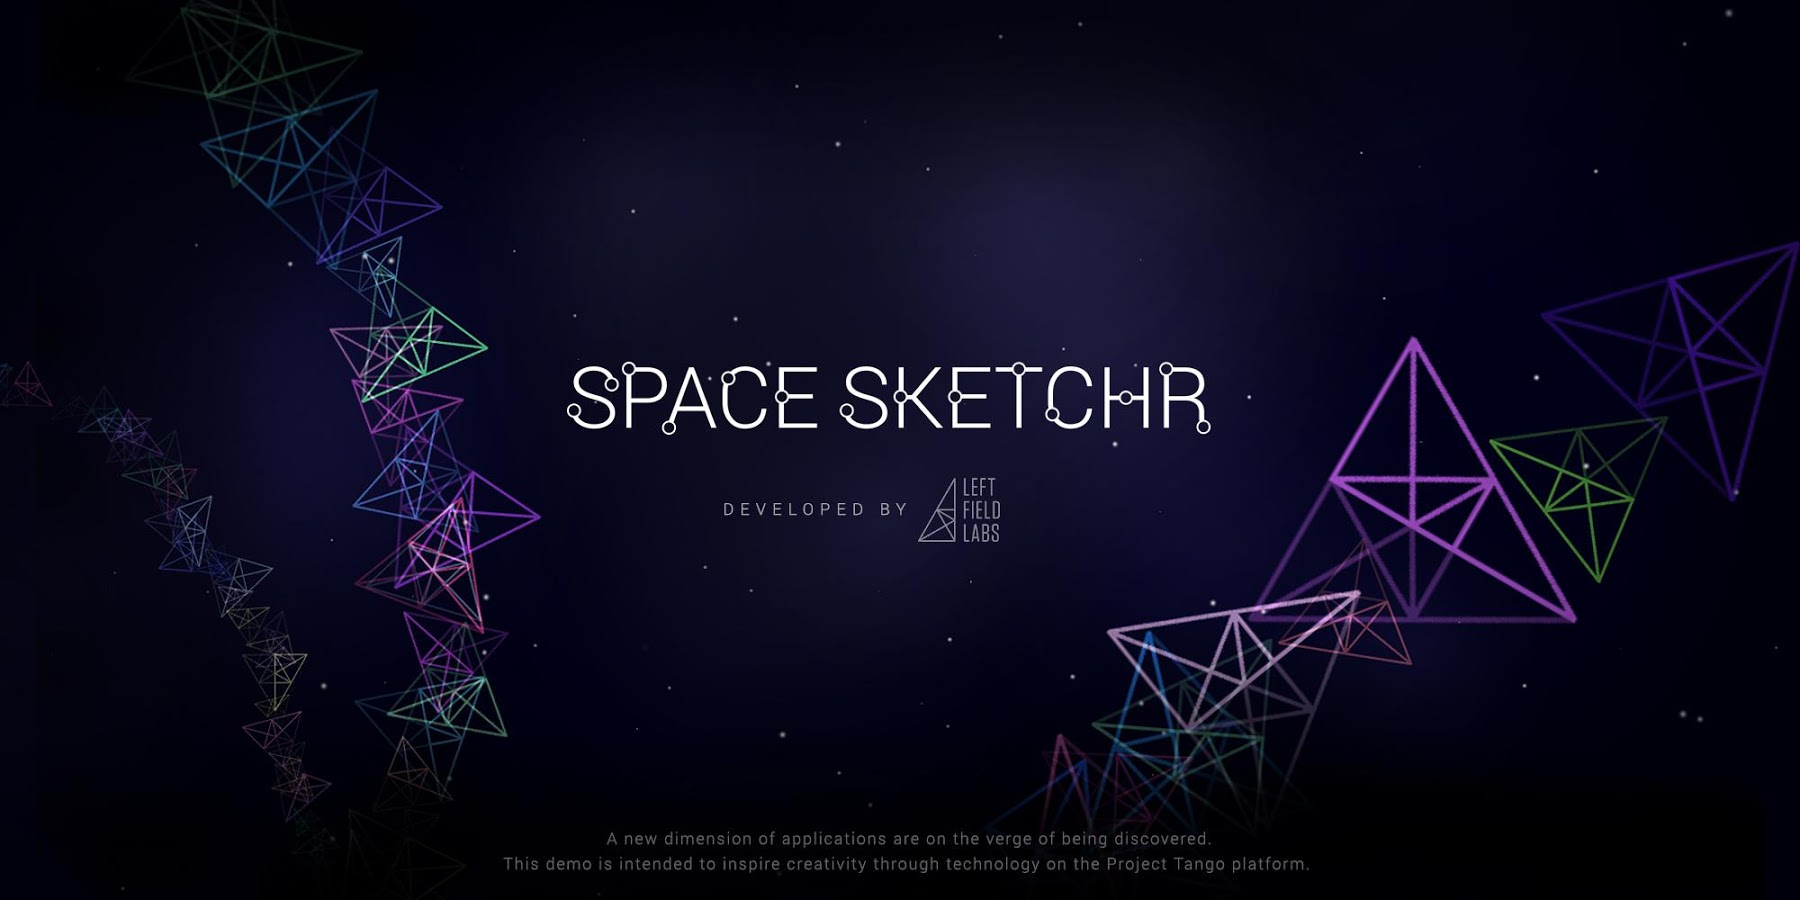 Space Sketchr By Left Field Labs Lets You Doodle With Project Tango, And It's Pretty Impressive To Watch